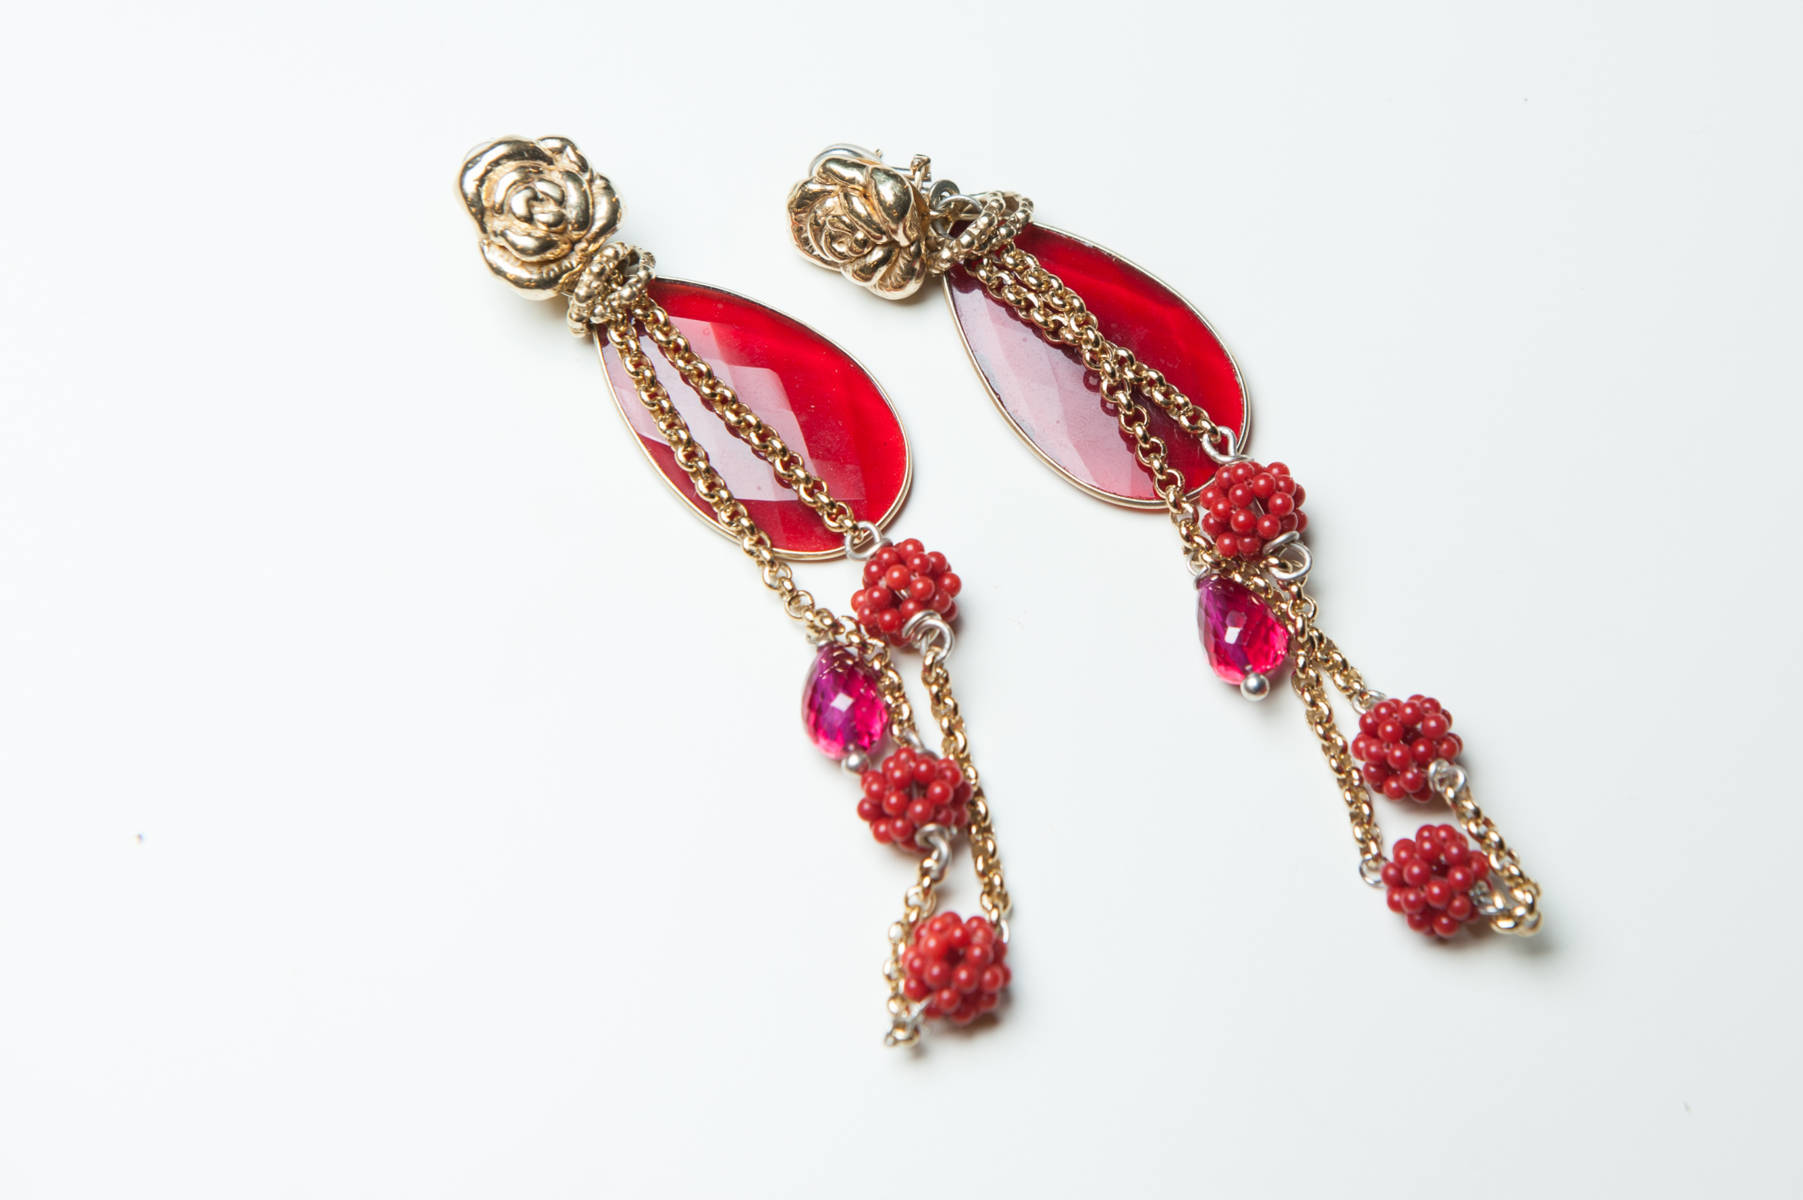 Giuseppina Fermi Roses and Blackberries Earrings